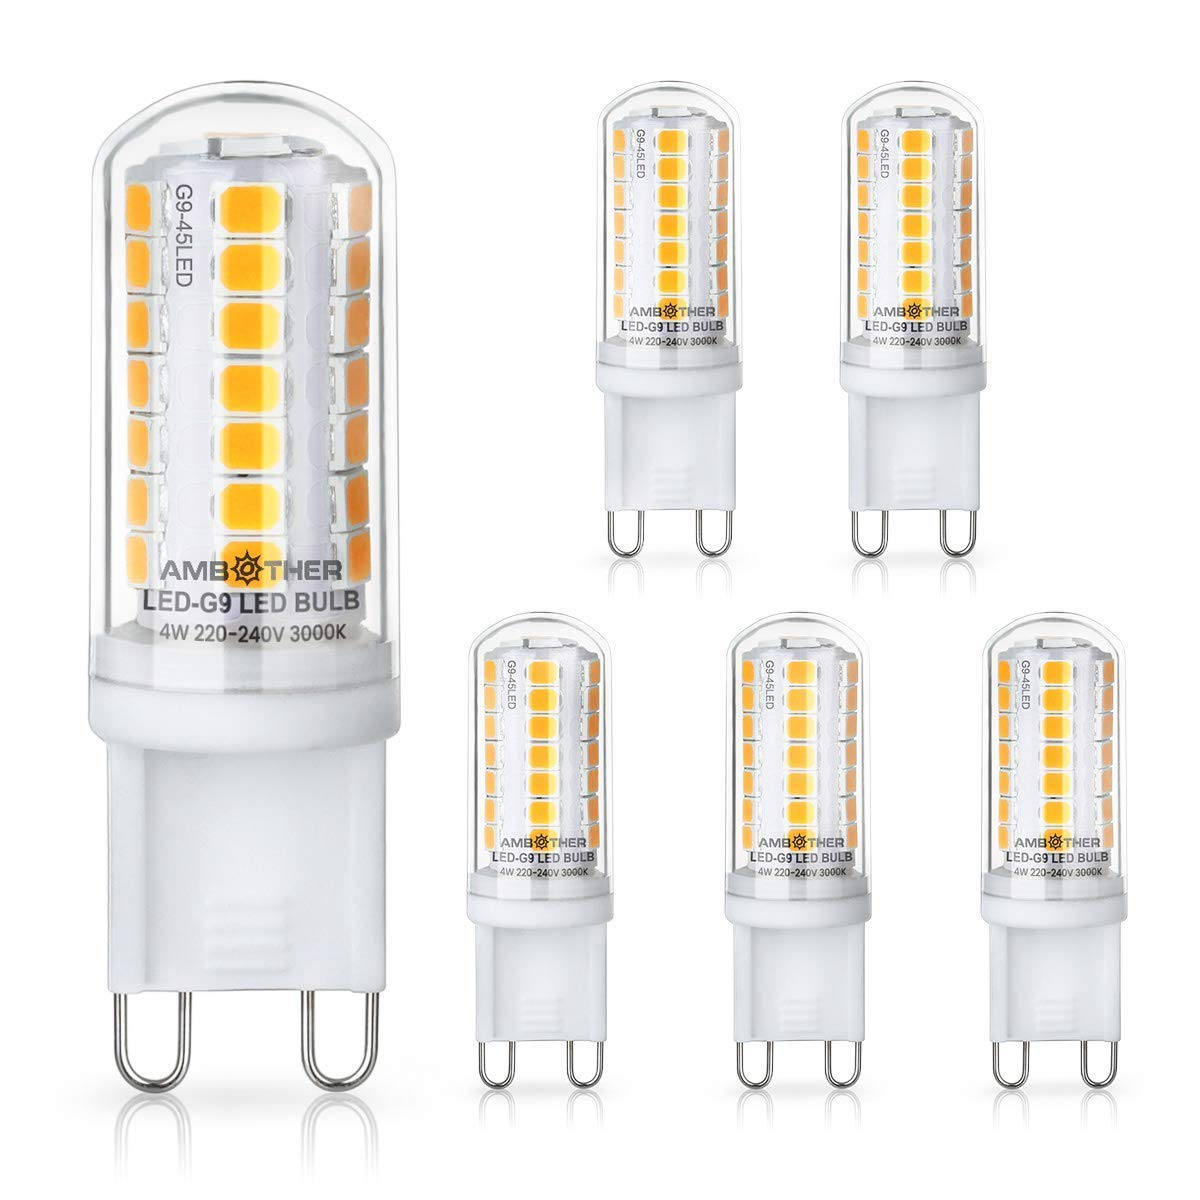 AMBOTHER G9 LED Lampen statt 40W Halogenlampen